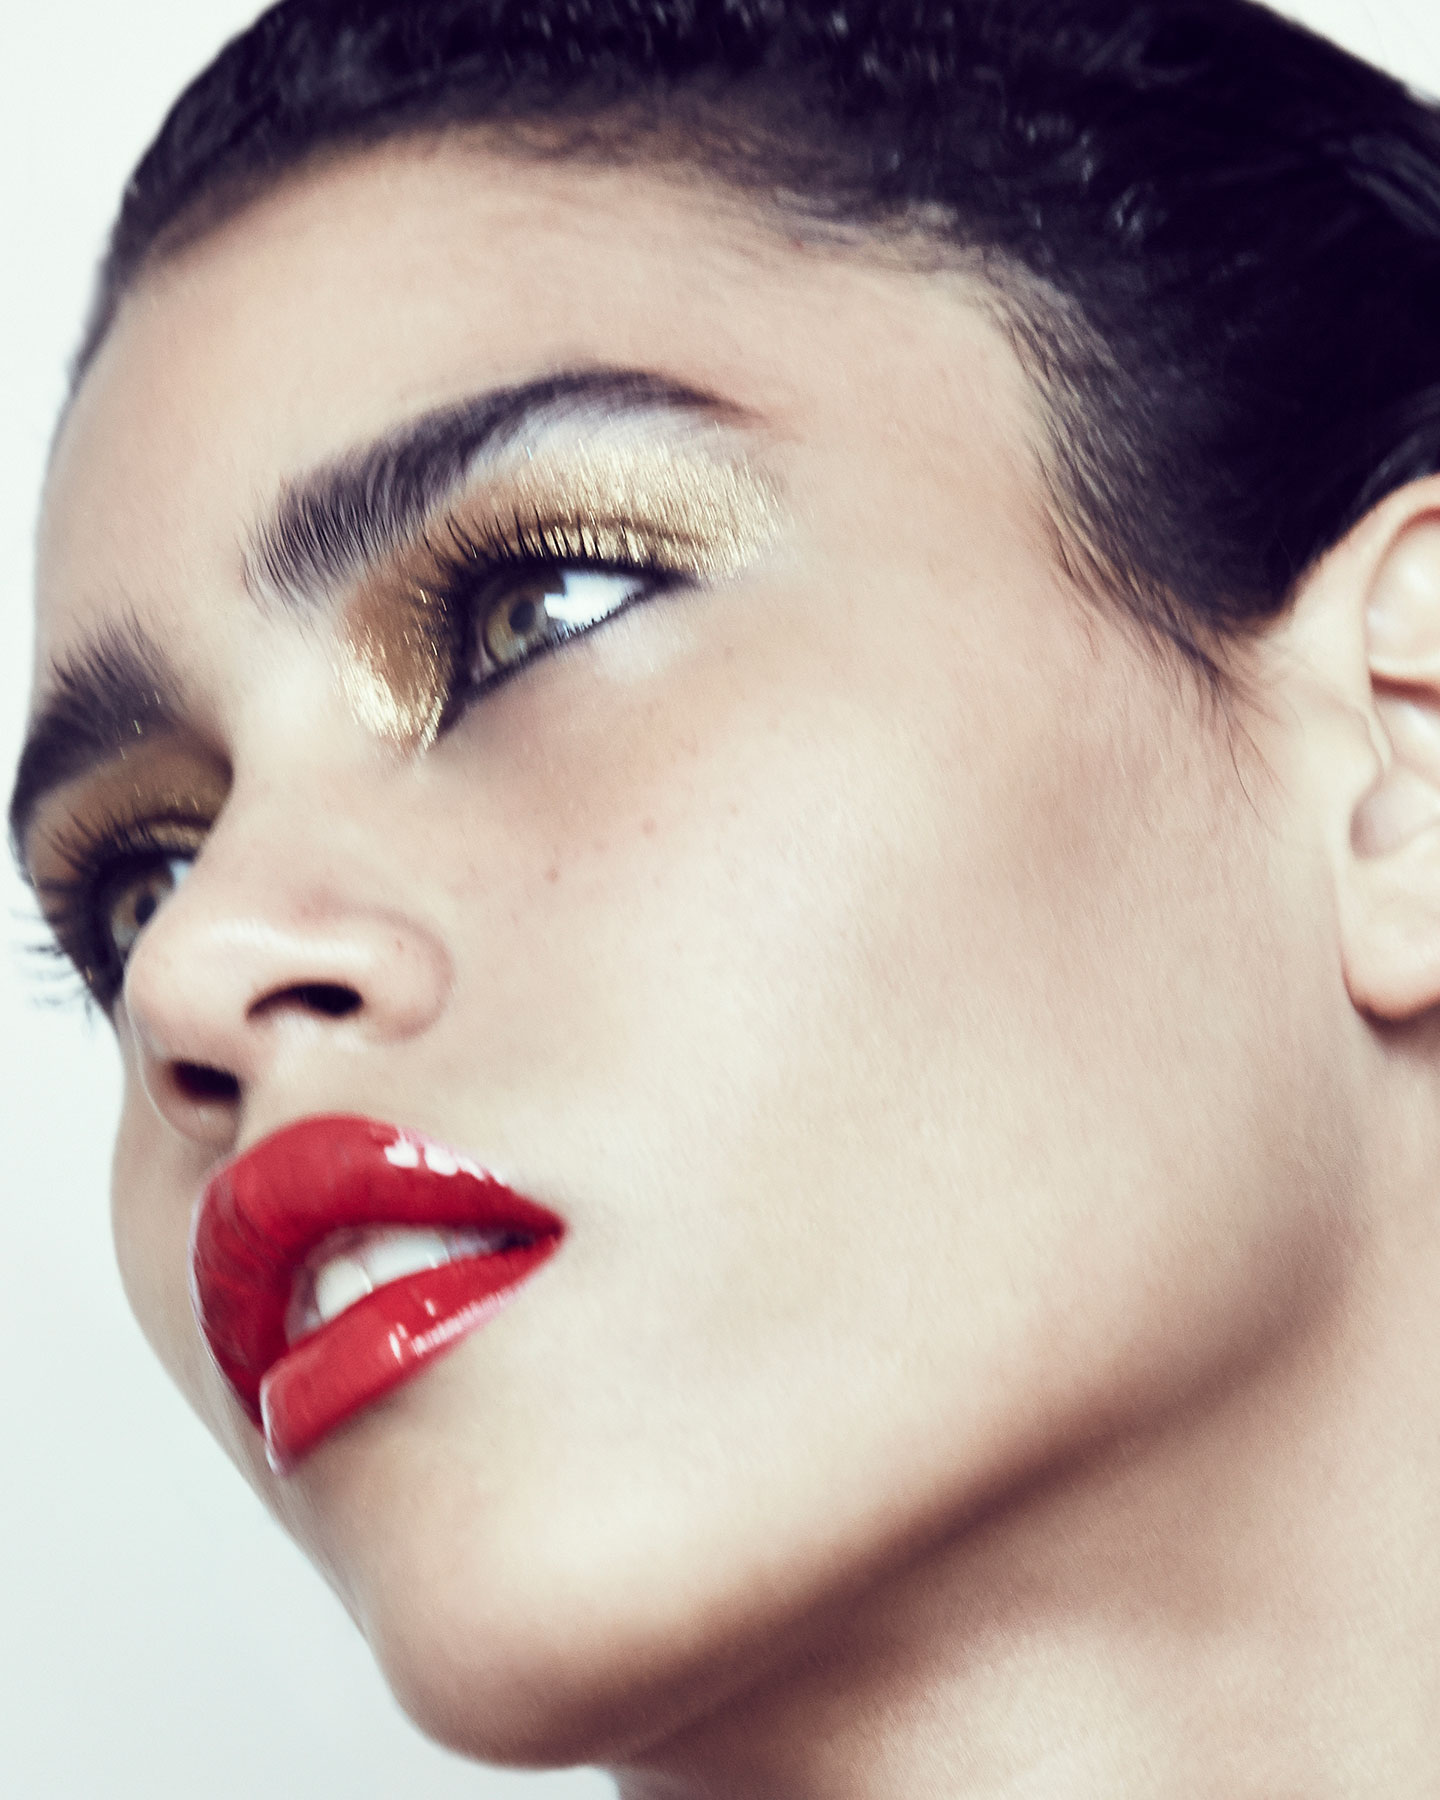 karol-santos-gold-glitter-eye-beauty.jpg